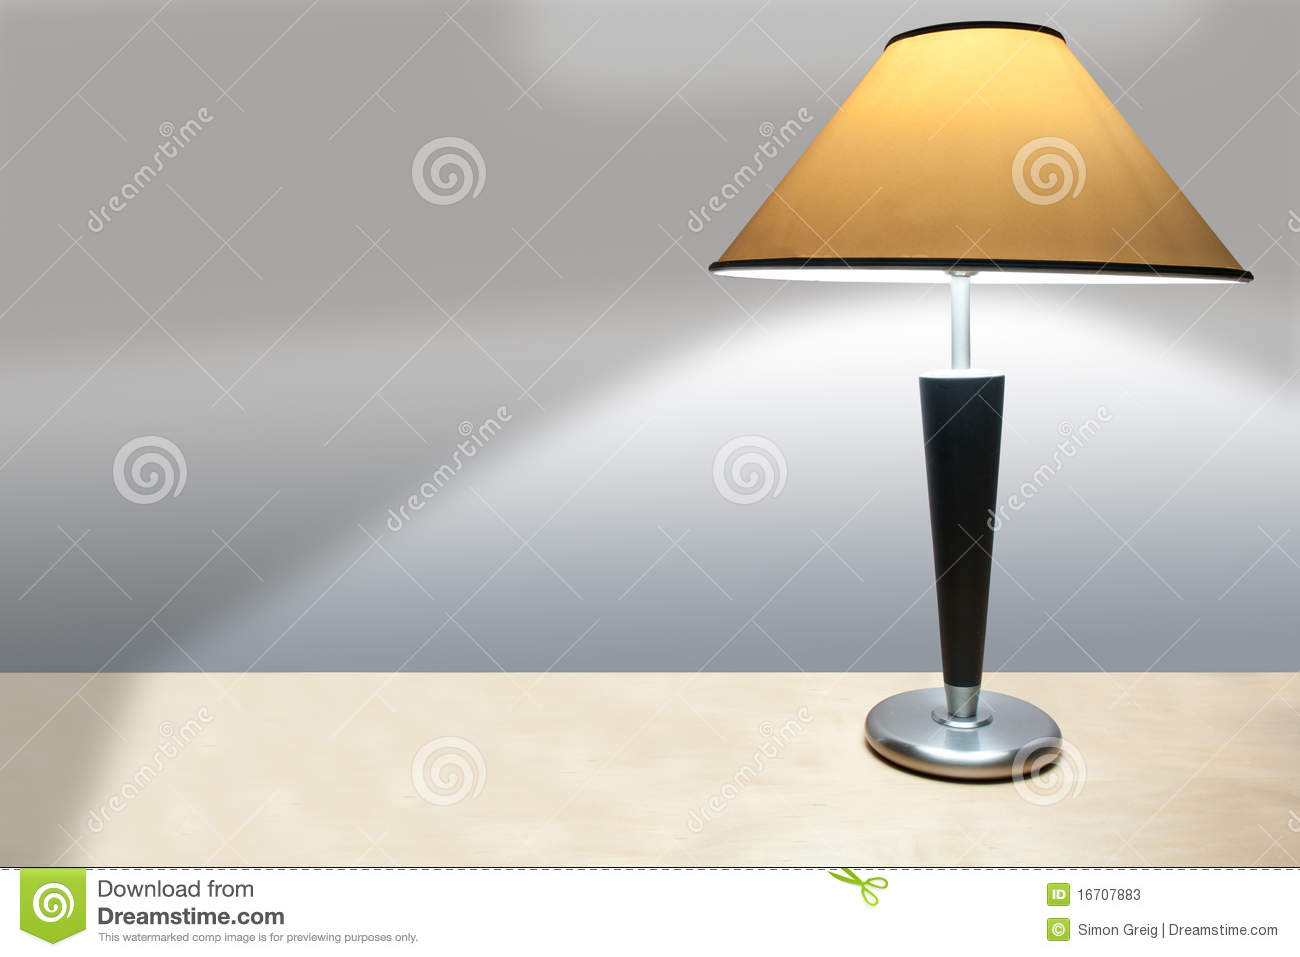 Simple Lamp A Desk Casting A Shadow Stock s Image